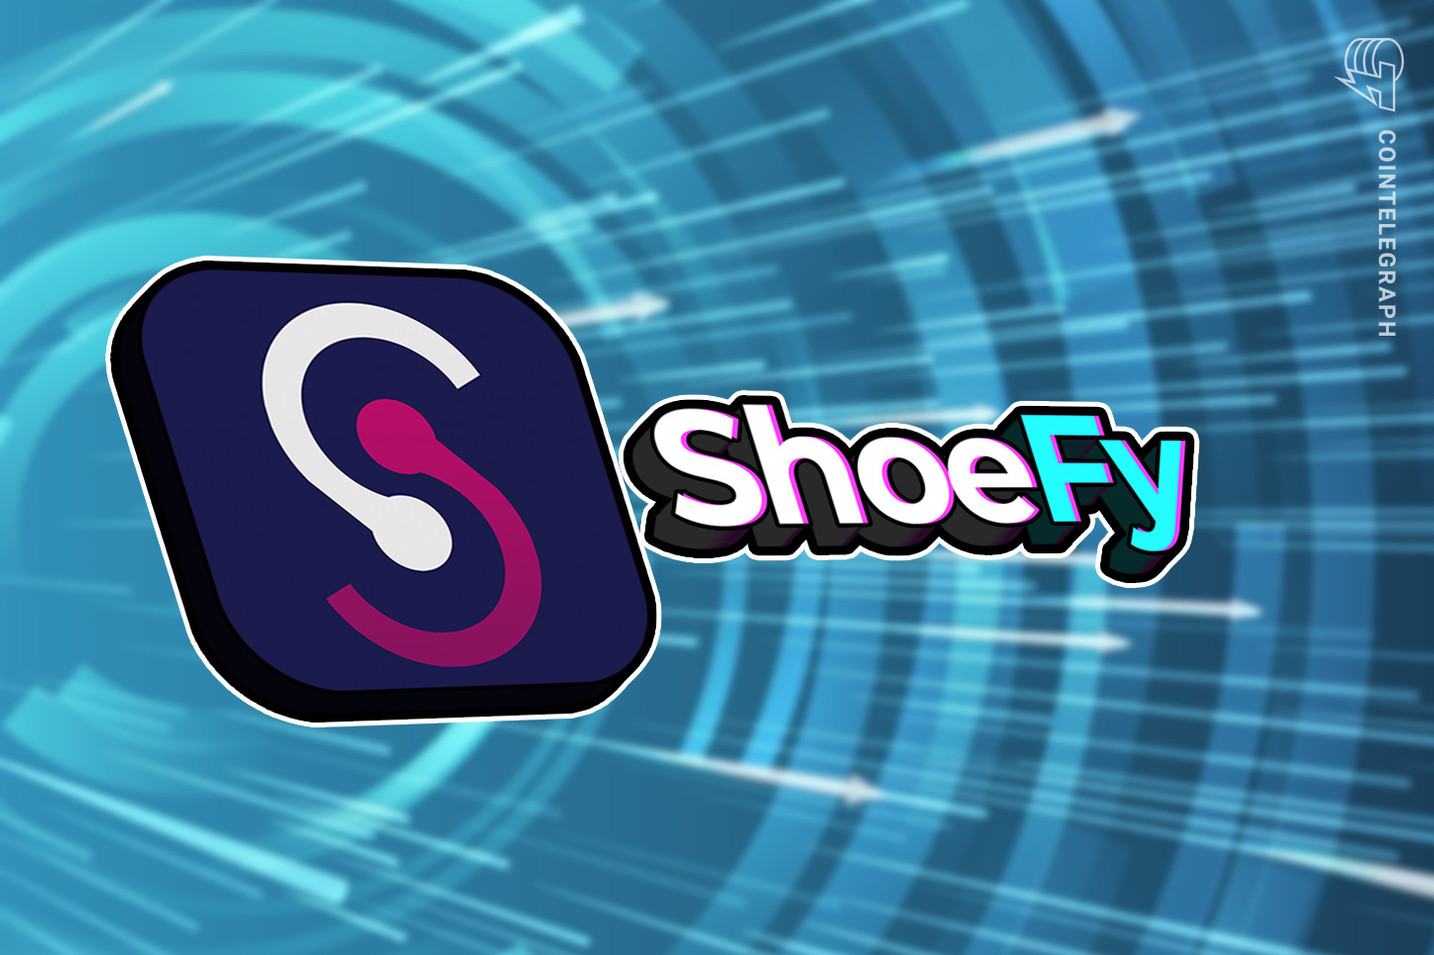 ShoeFy raises $3.65M, adds utility layer to NFTs for generating passive income